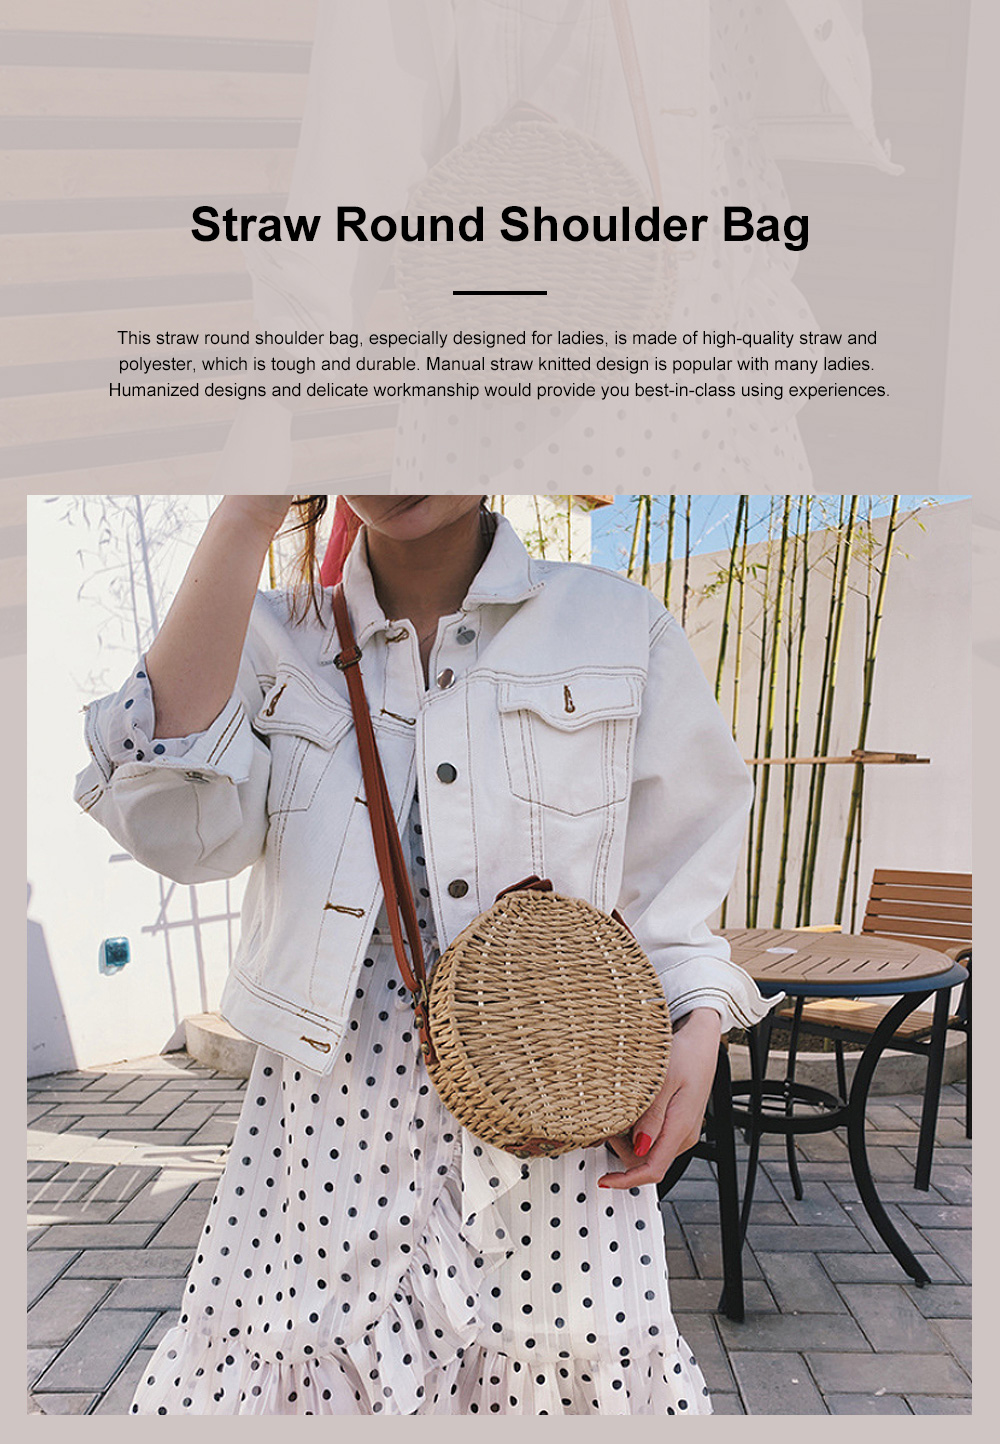 Simple Fancy Straw Shoulder Round Bag for Ladies, Beach Vacation Holiday National Style Women Shoulder Bag 0